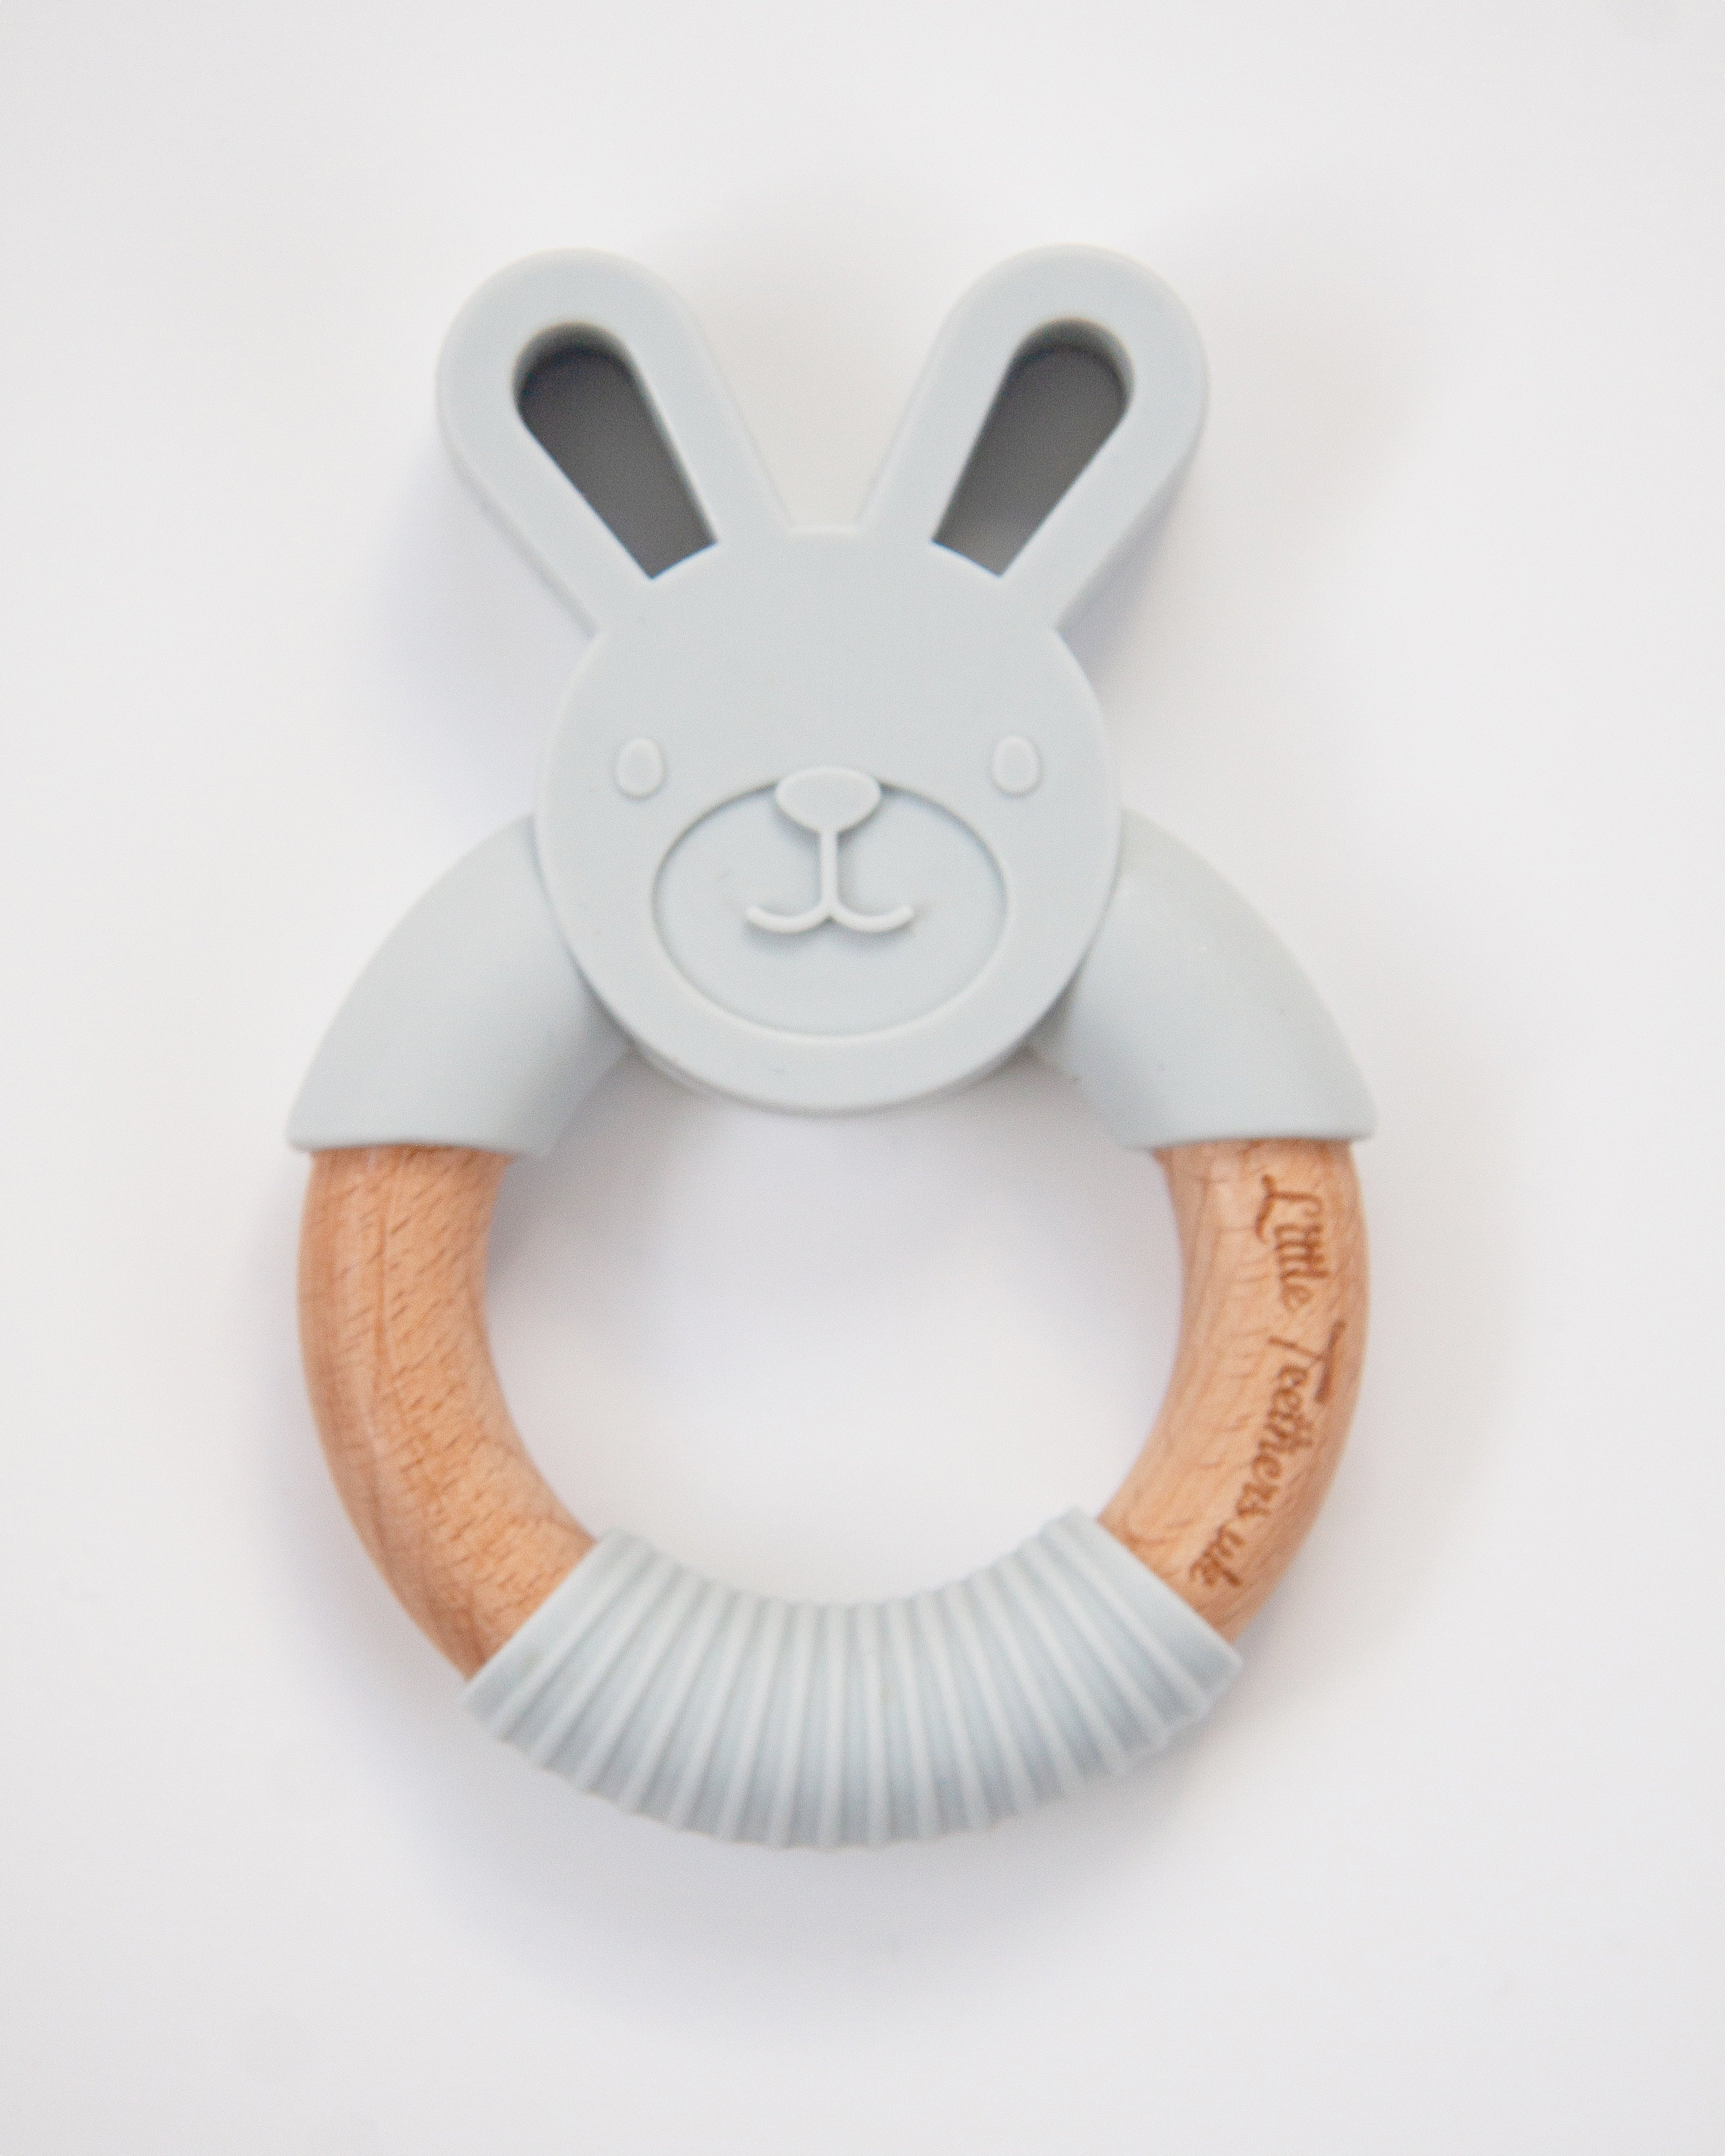 Little Teethers Rabbit Beechwood Silicone Teether - Grey